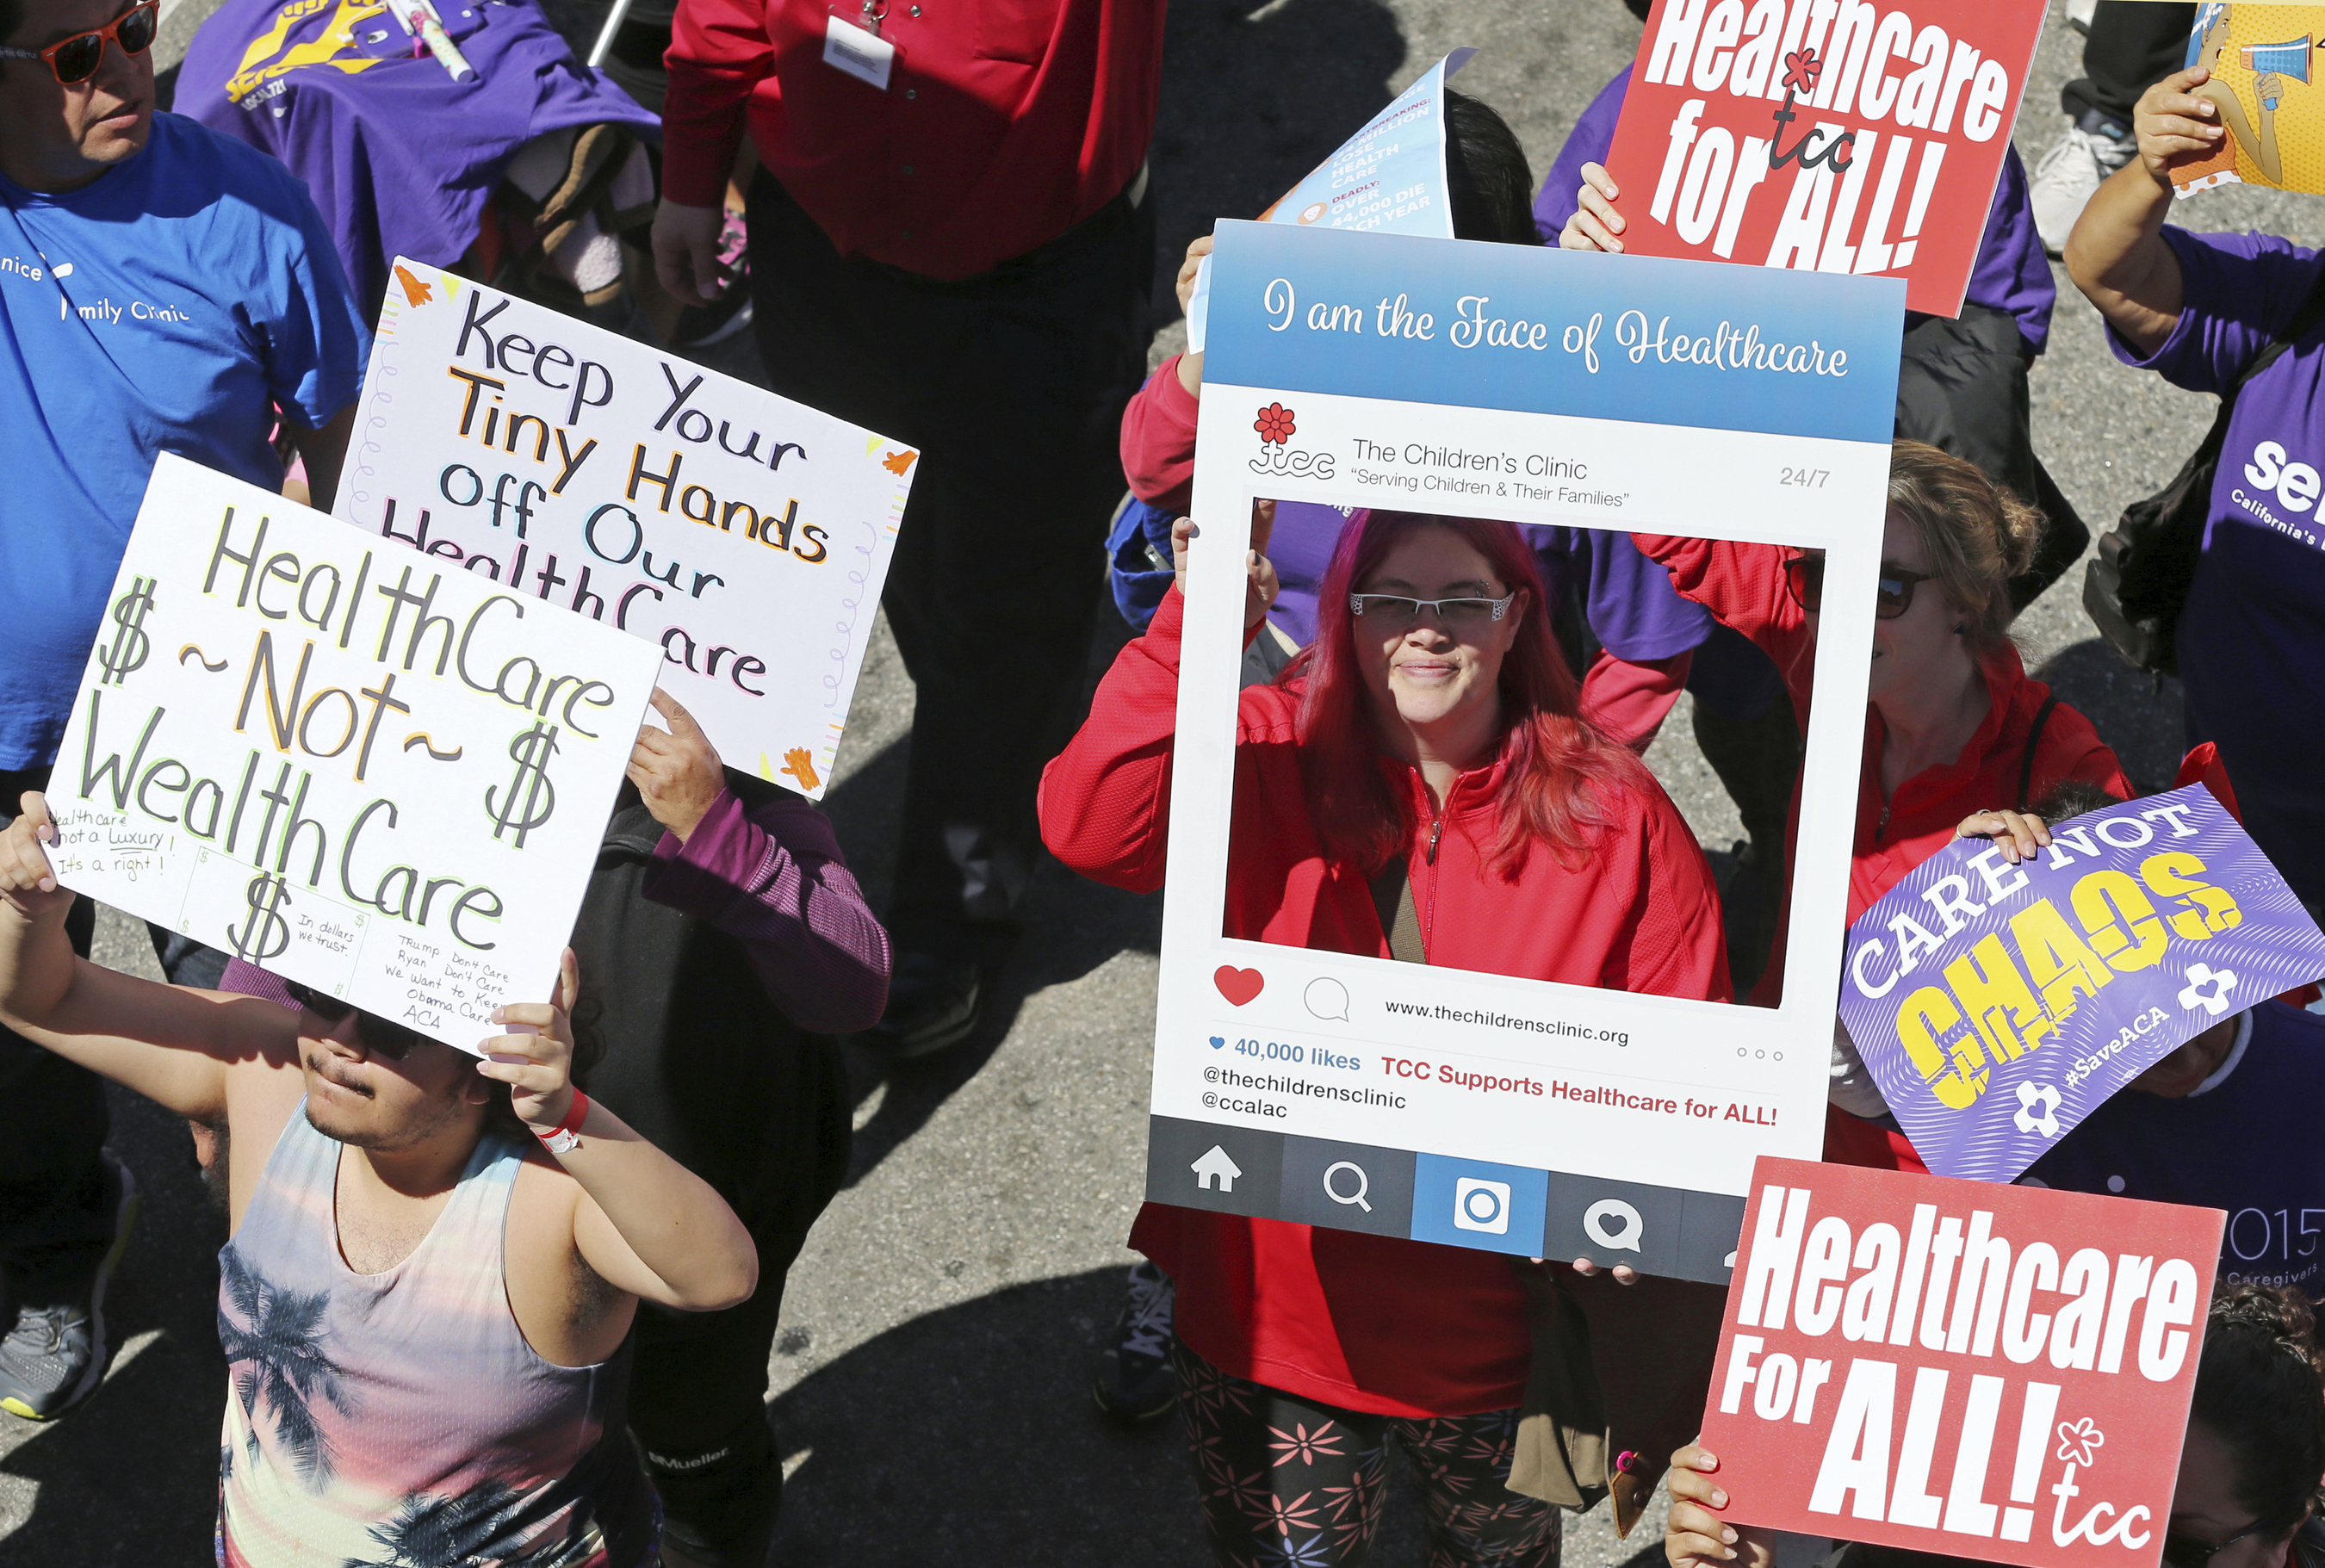 FILE - In this March 23, 2017, file photo, hundreds of people march through downtown Los Angeles protesting President Donald Trump's plan to dismantle the Affordable Care Act, his predecessor's signature health care law. Health care proposals are among the first actions for some new Democratic governors and Democratically controlled legislatures. Expanding access to care was a rallying point for the party in the 2018 elections. The early proposals fall short of universal health care but are generally seen as steps that will get states closer to full health coverage for their residents.   (AP Photo/Reed Saxon, File)